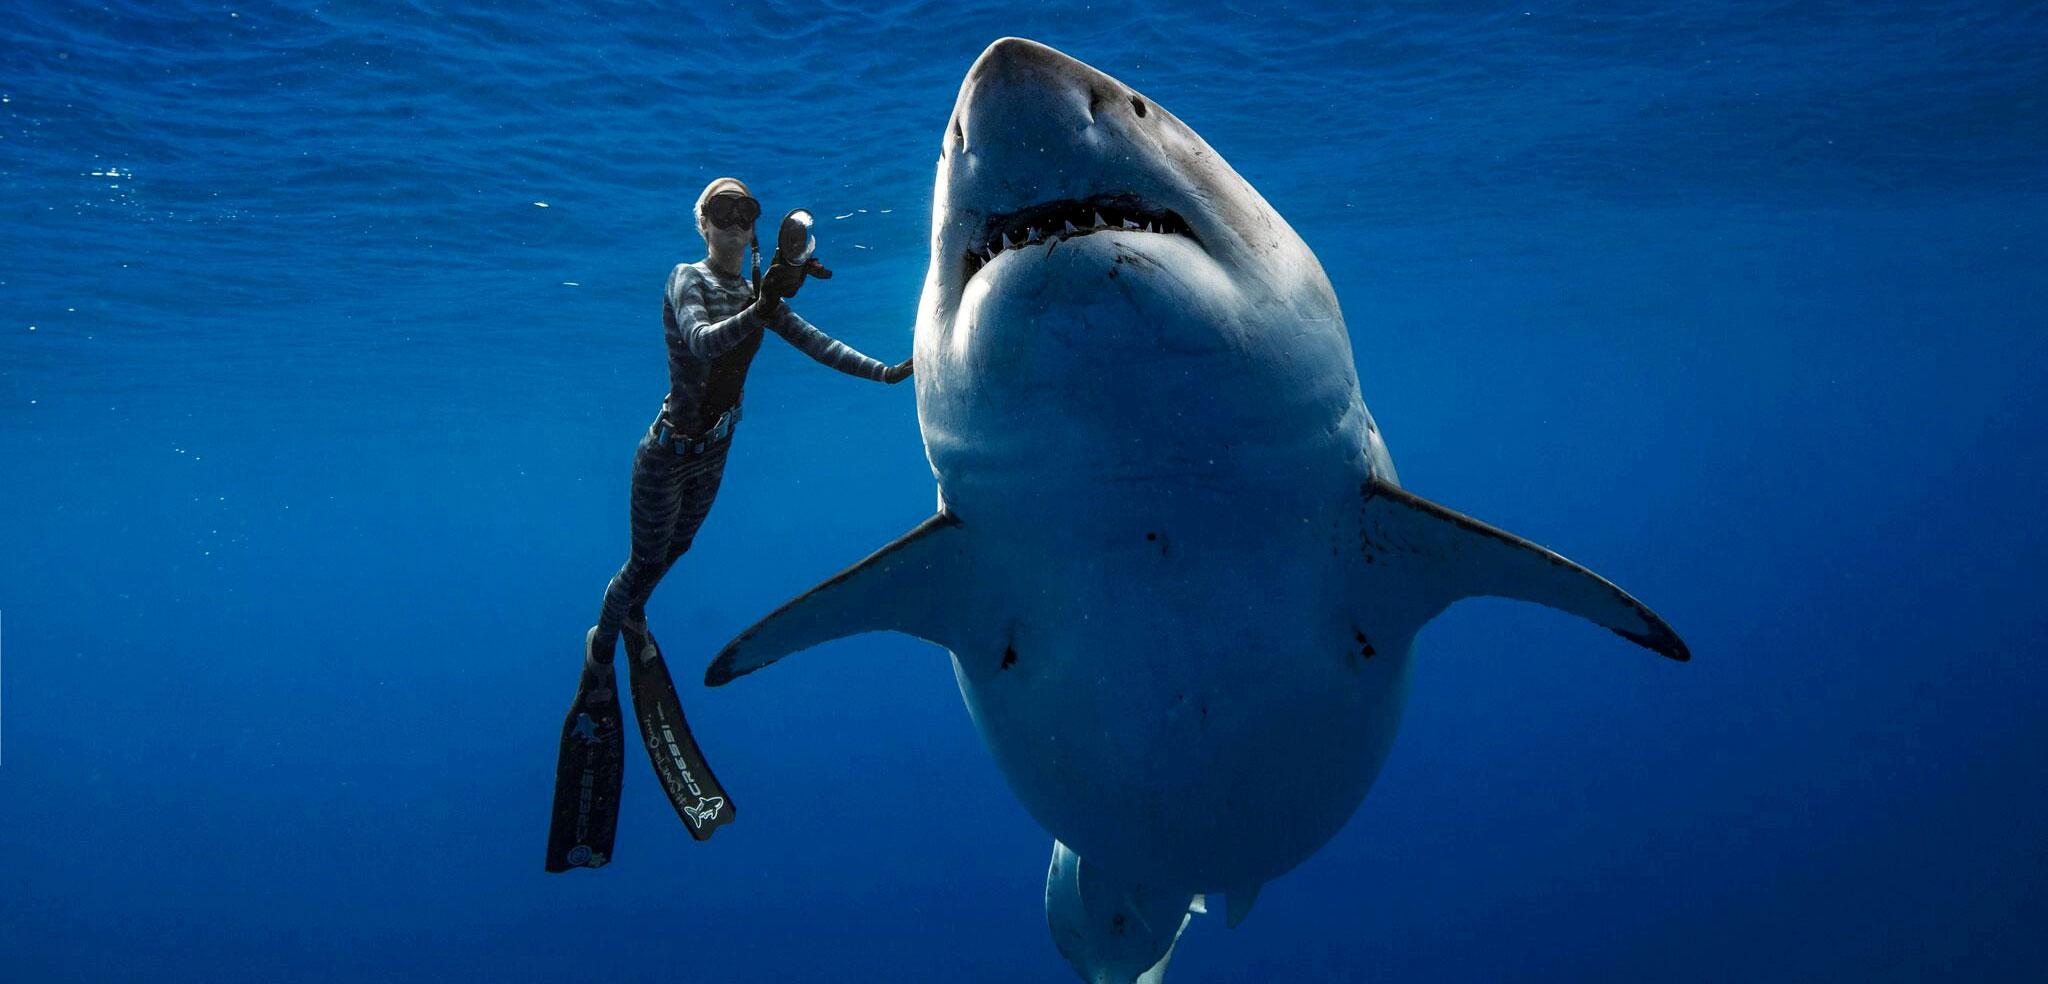 Ocean Ramsey touching a great white shark